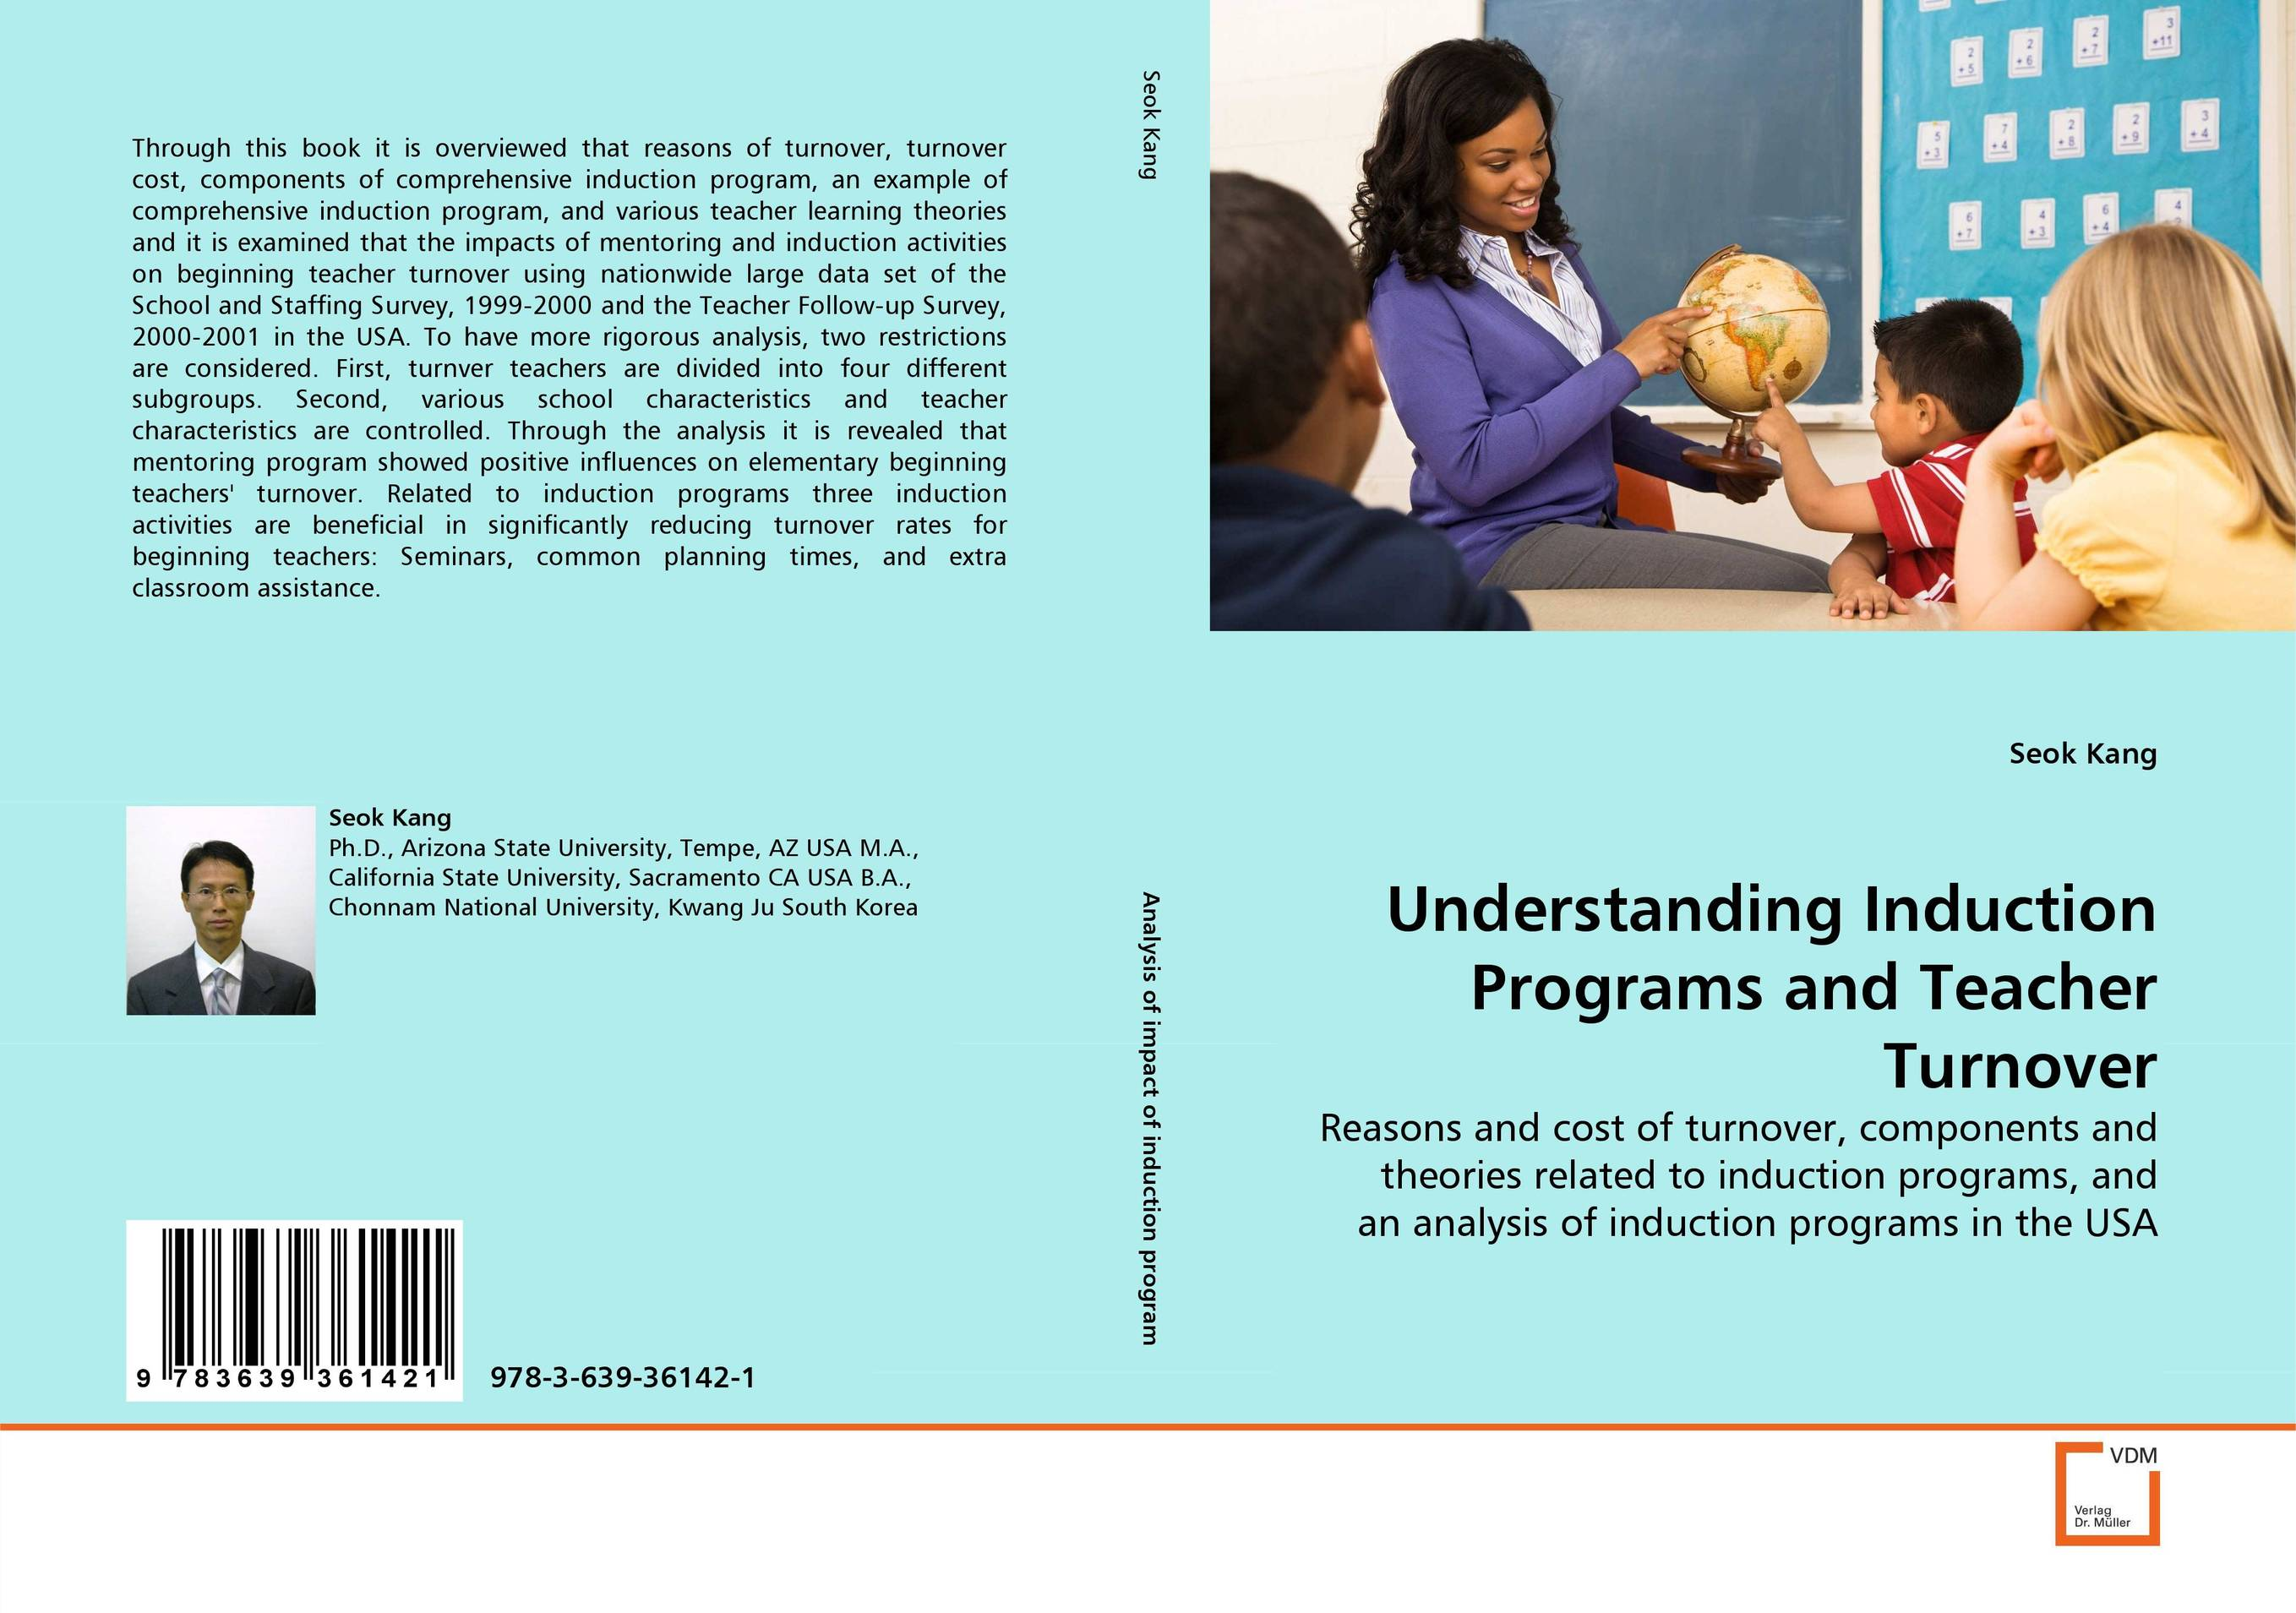 Understanding Induction Programs and Teacher Turnover challenges facing beginning teachers in induction and orientation